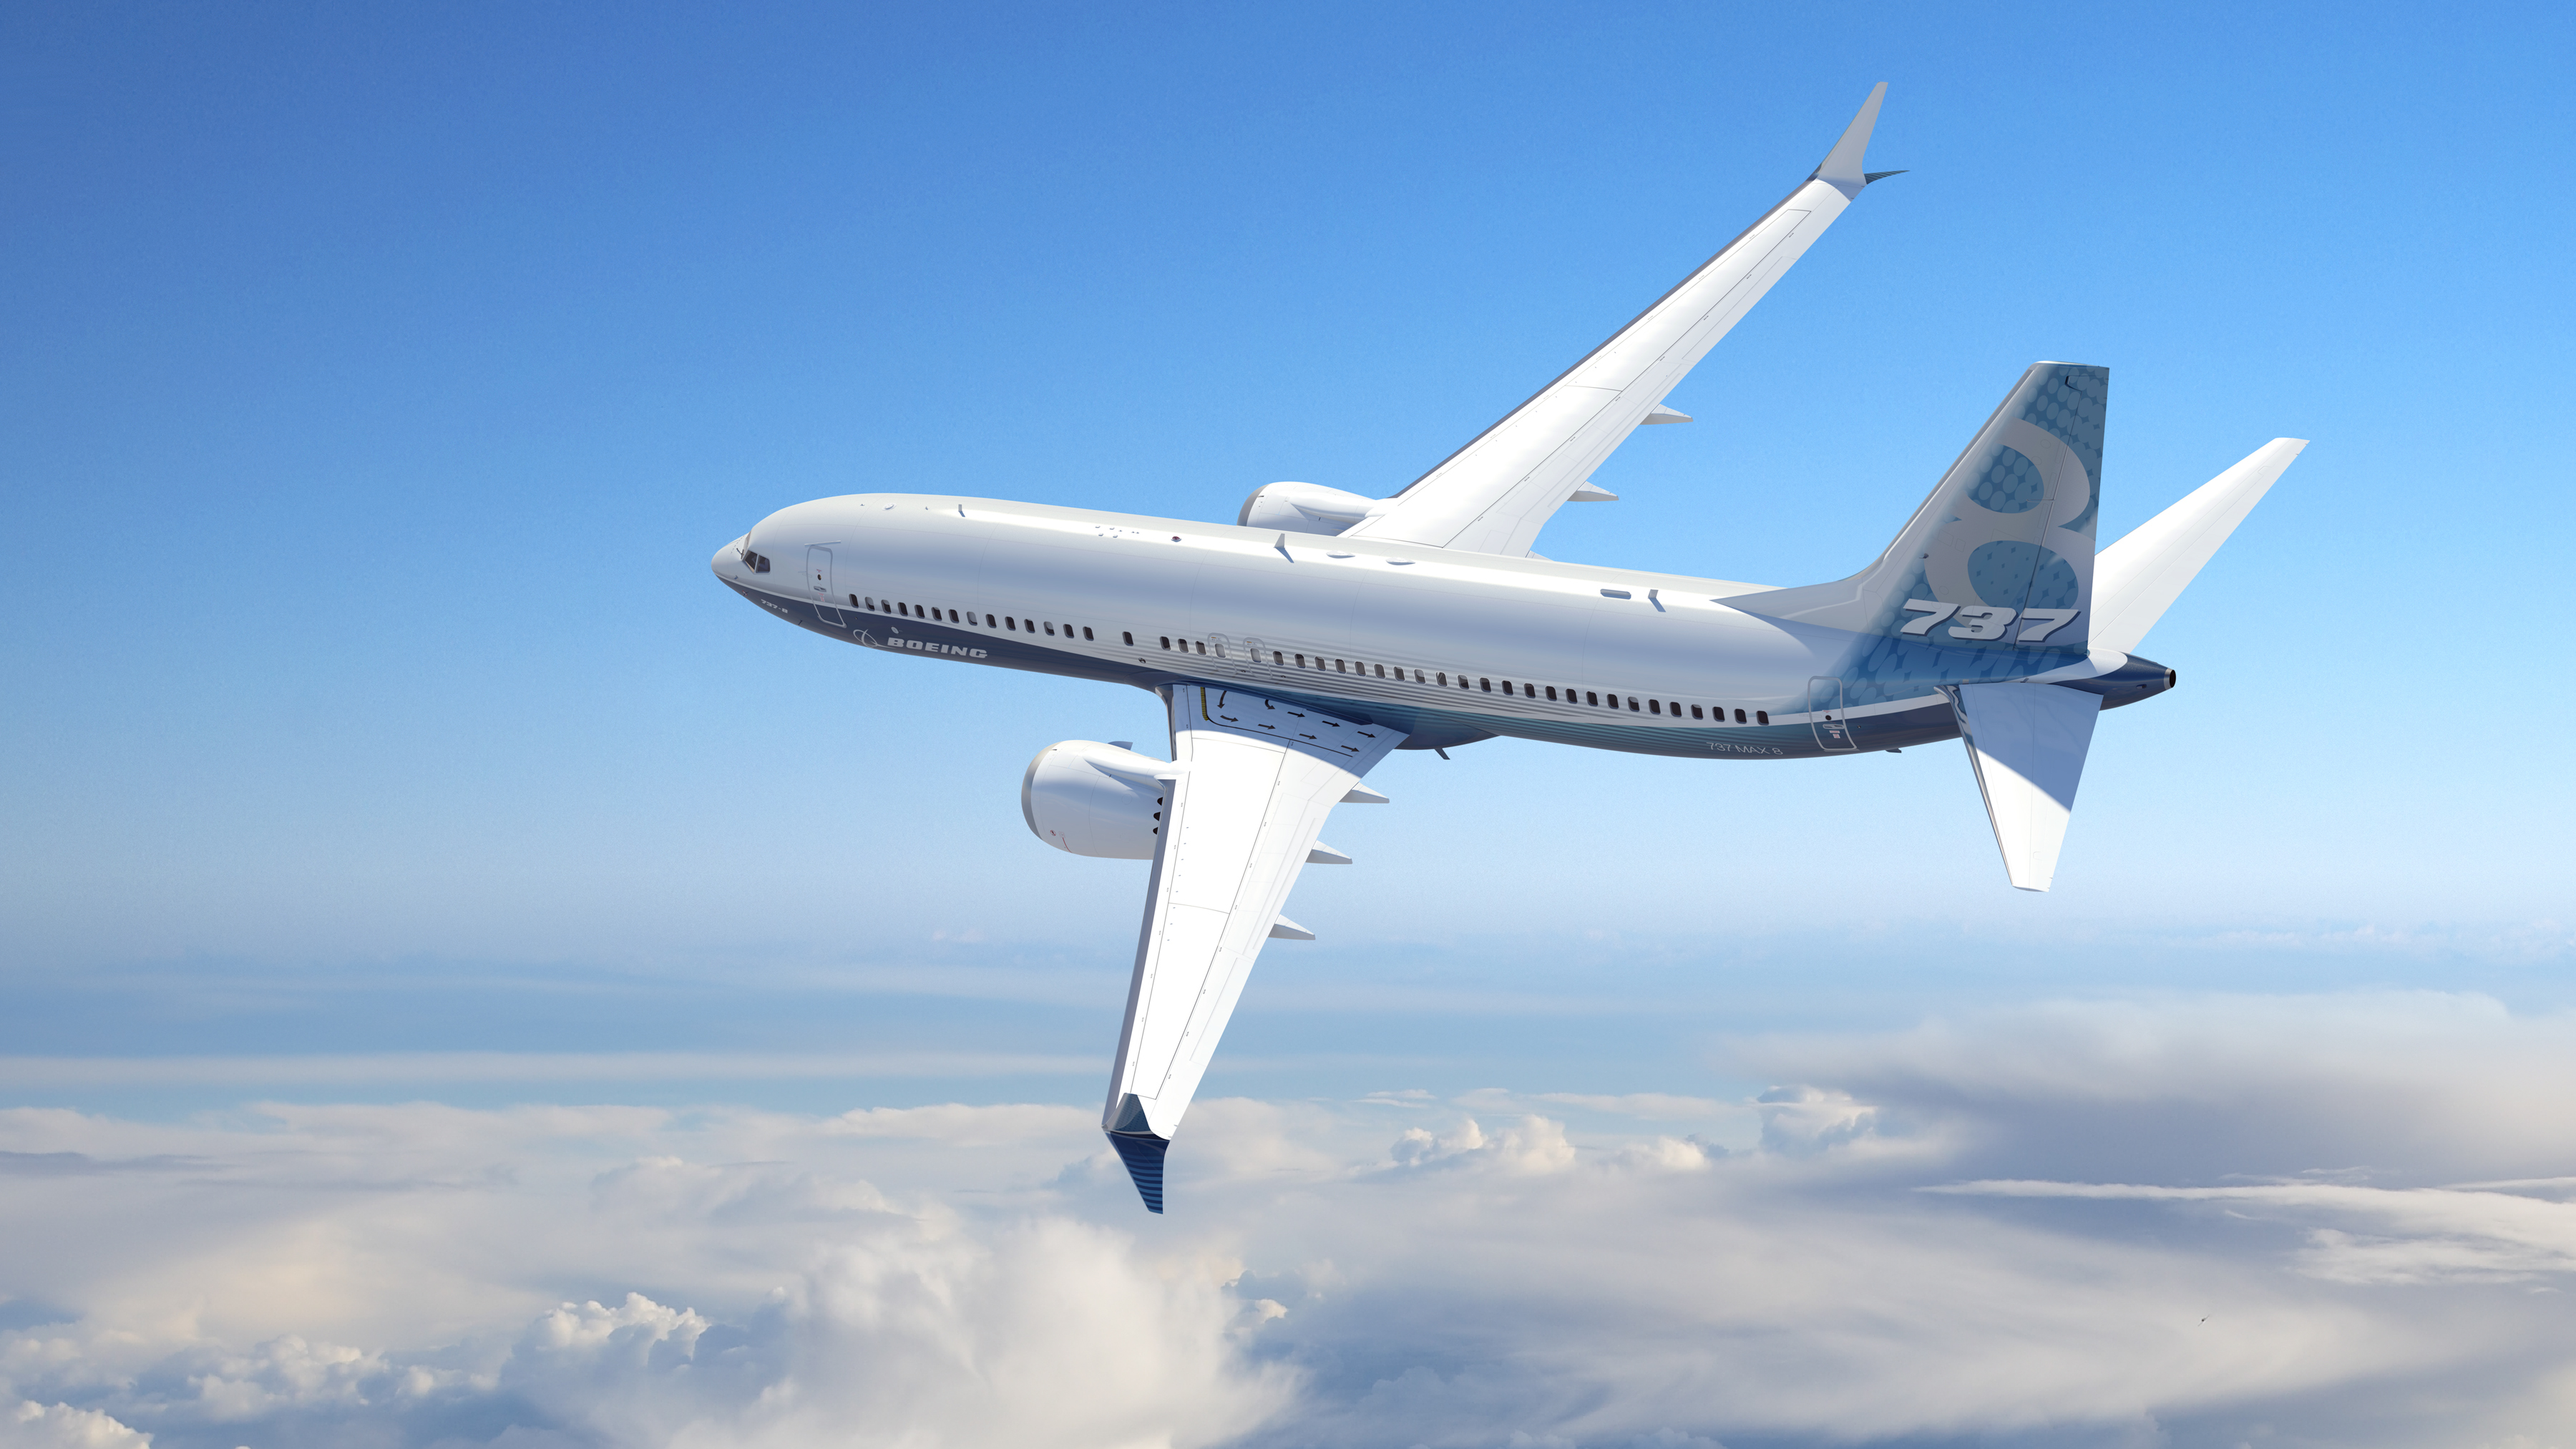 737 Max Will Optimize Aerodynamics With Bae Systems